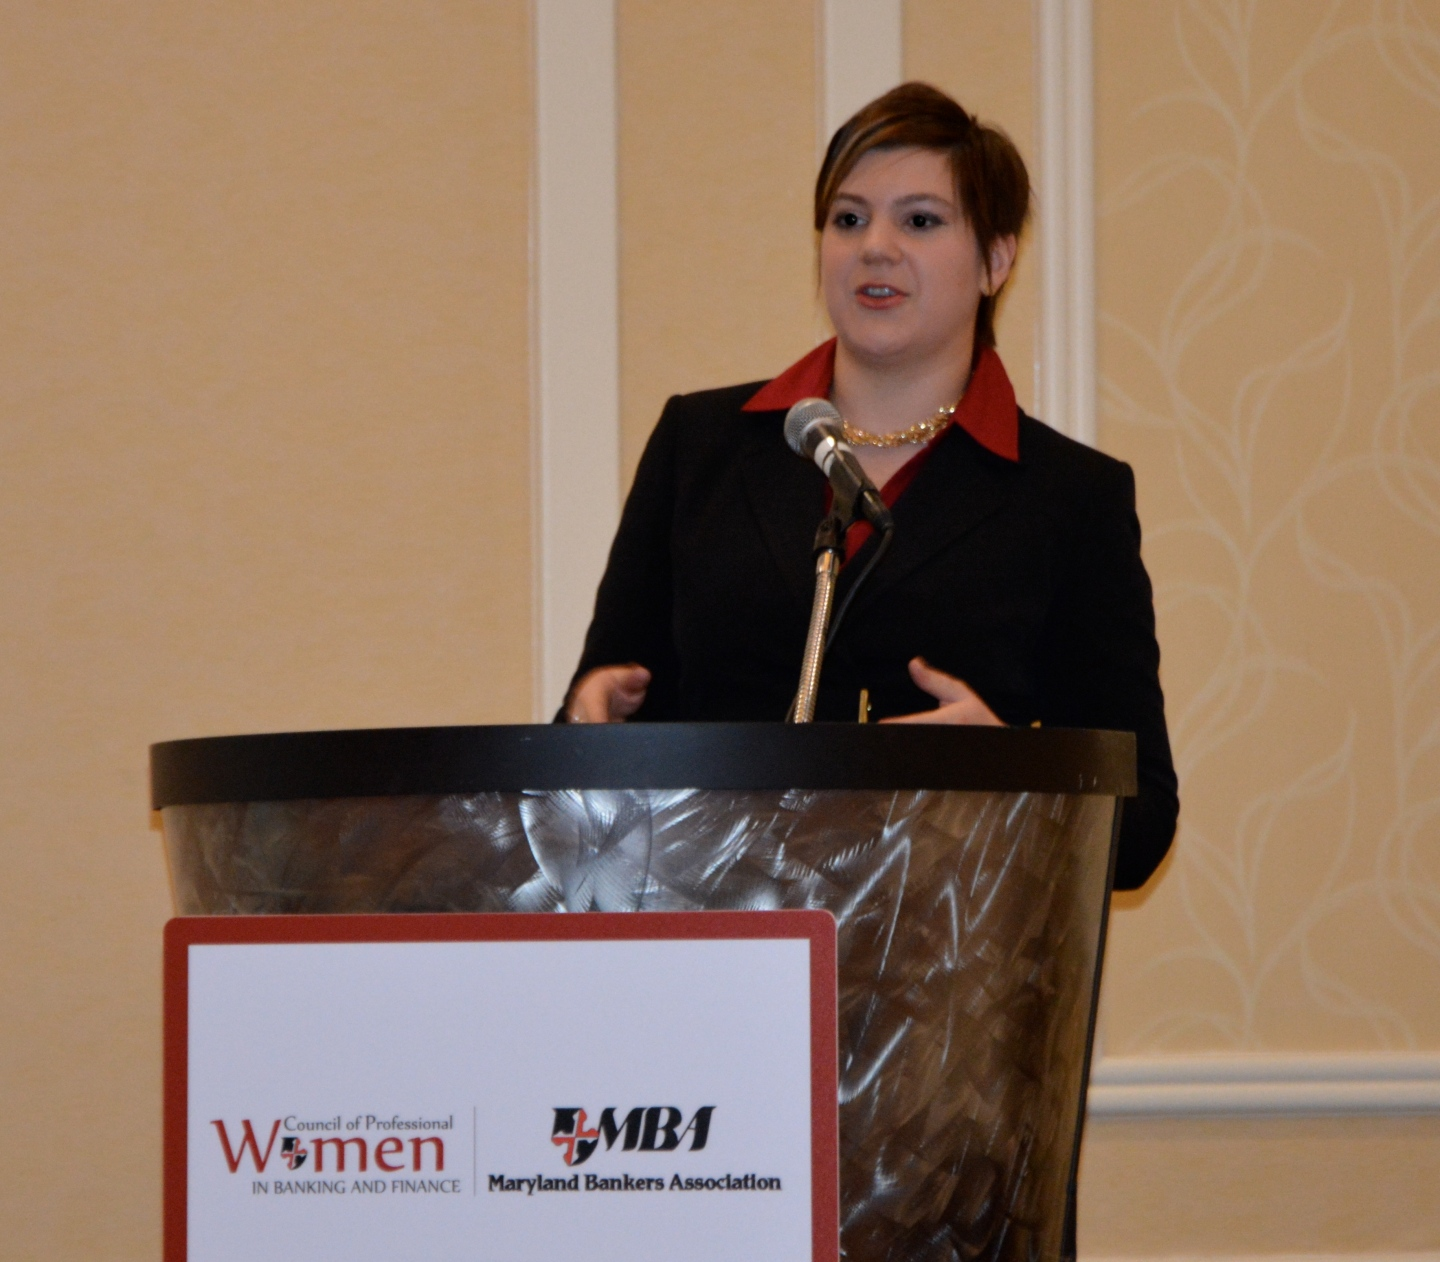 Kate Everson, Maryland Bankers Association Council for Professional Women in Banking and Finance Quarterly Meeting